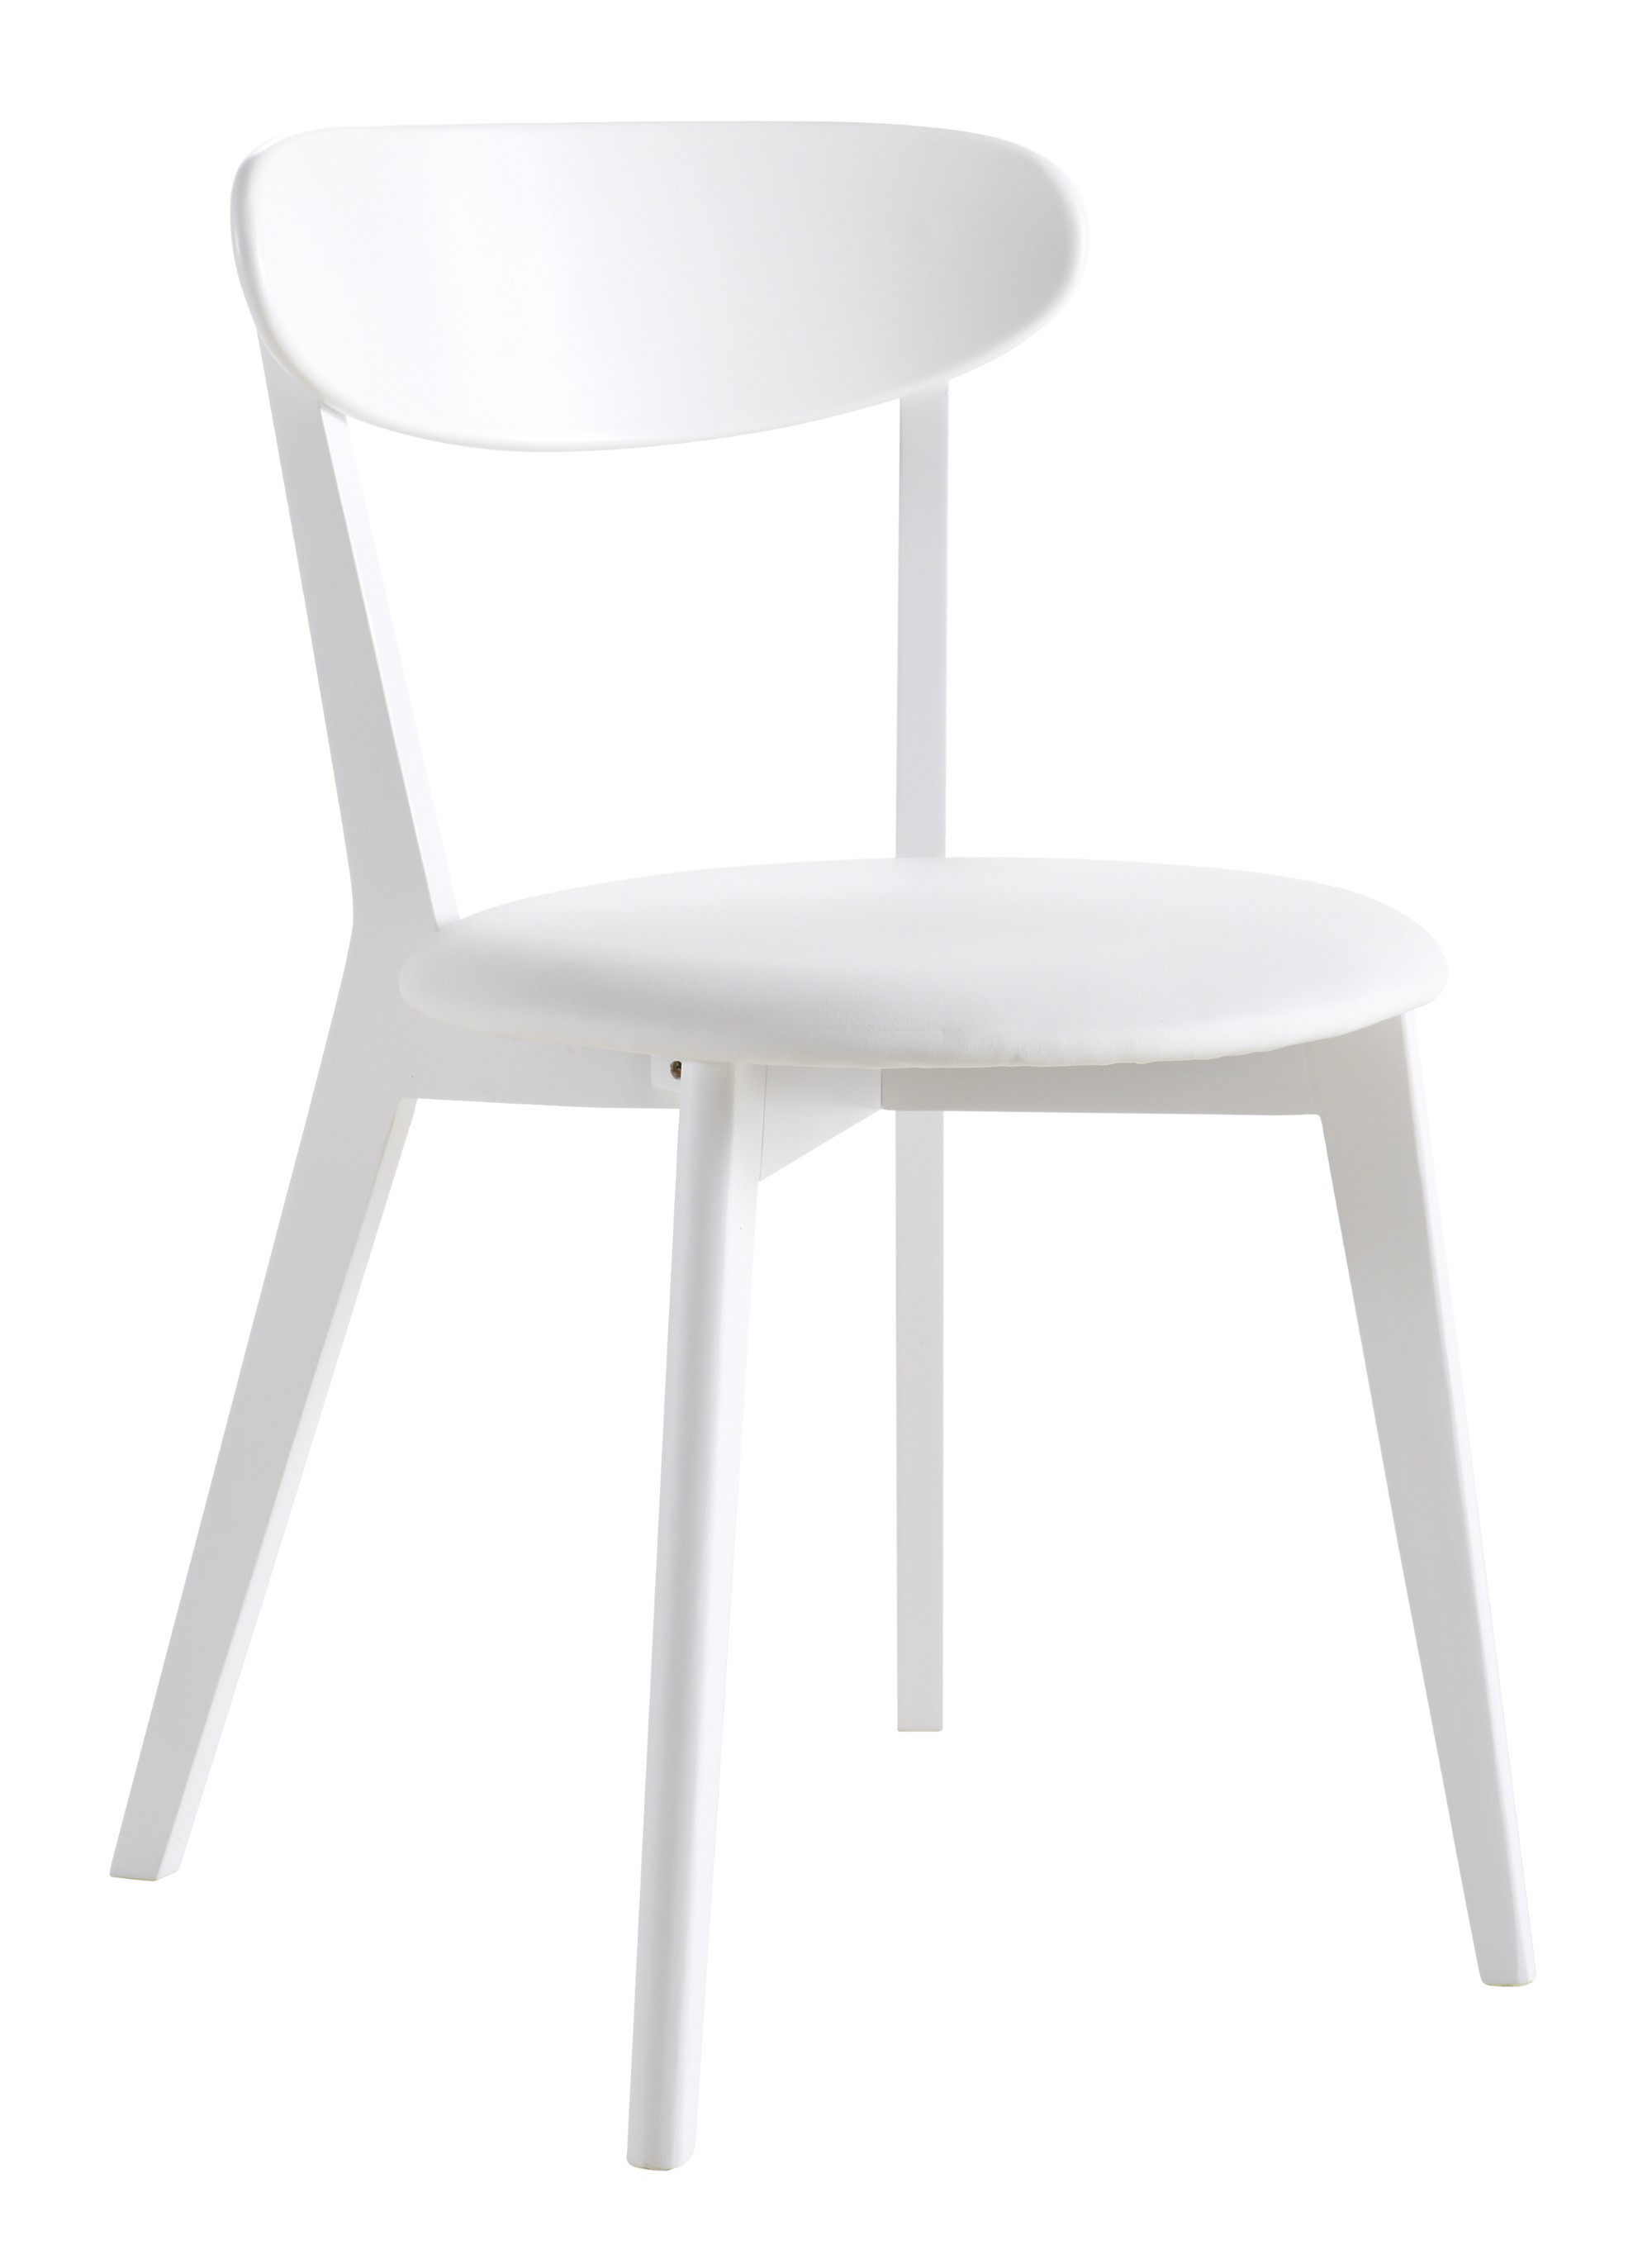 Chaise cuisine blanche id es de d coration int rieure french decor for Chaise cuisine blanche